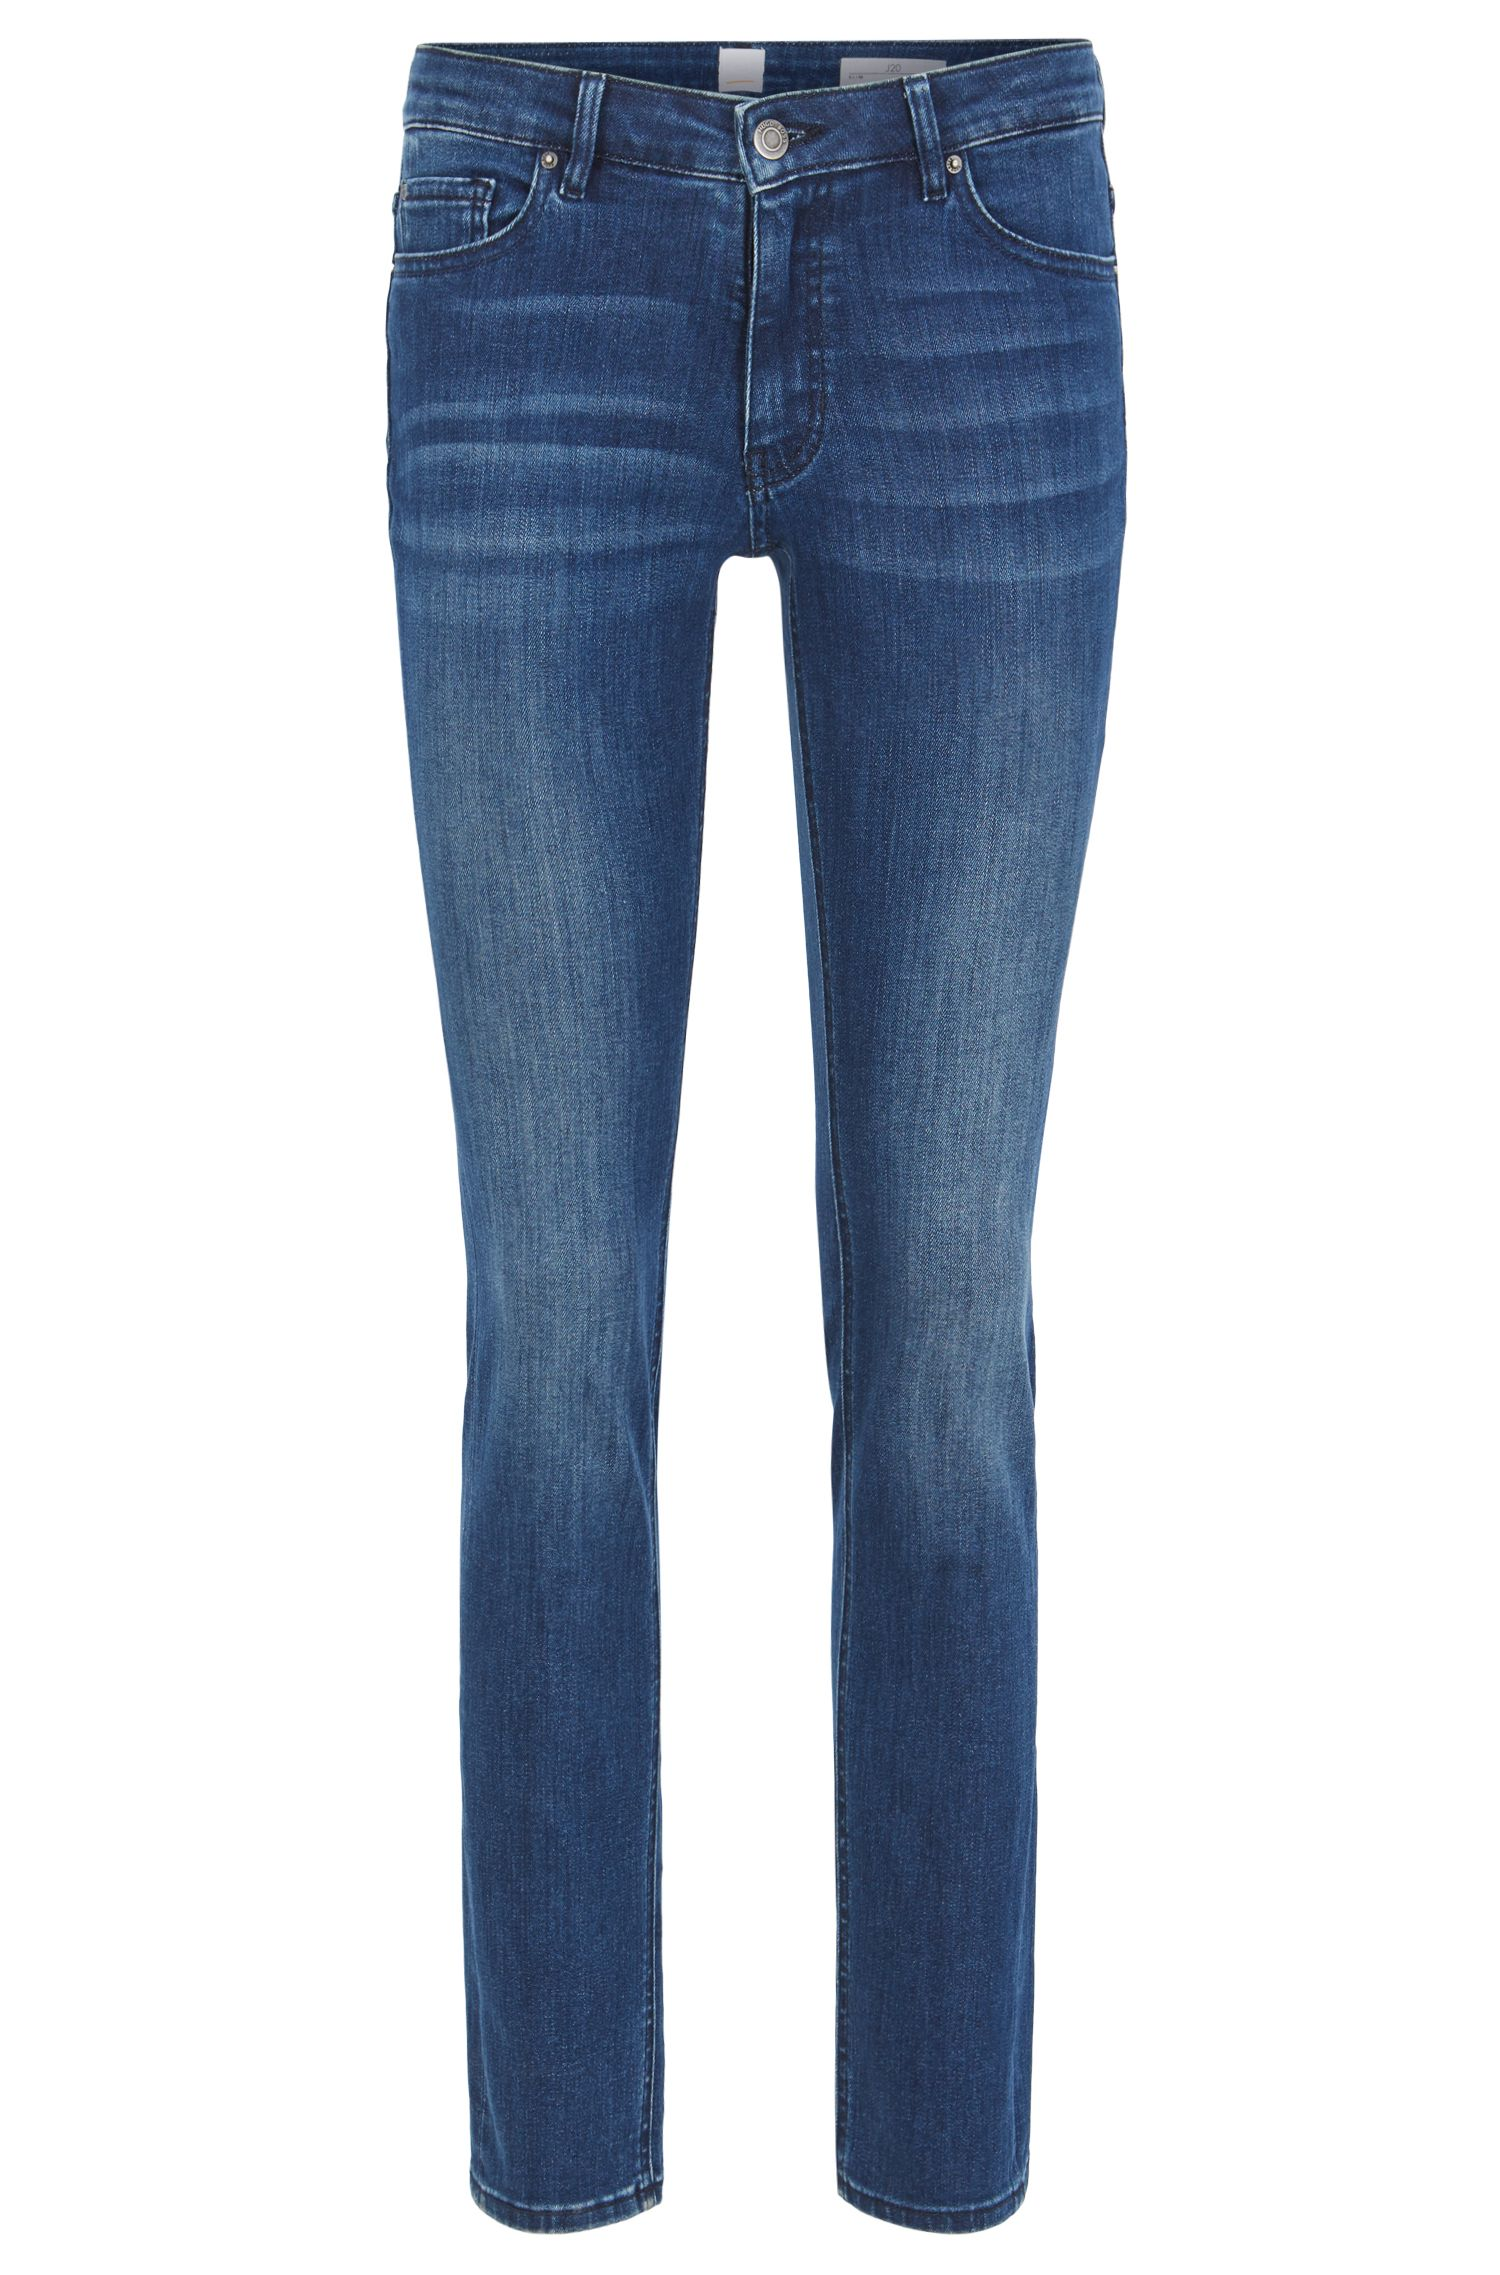 Slim-fit mid-blue jeans in comfort-stretch denim